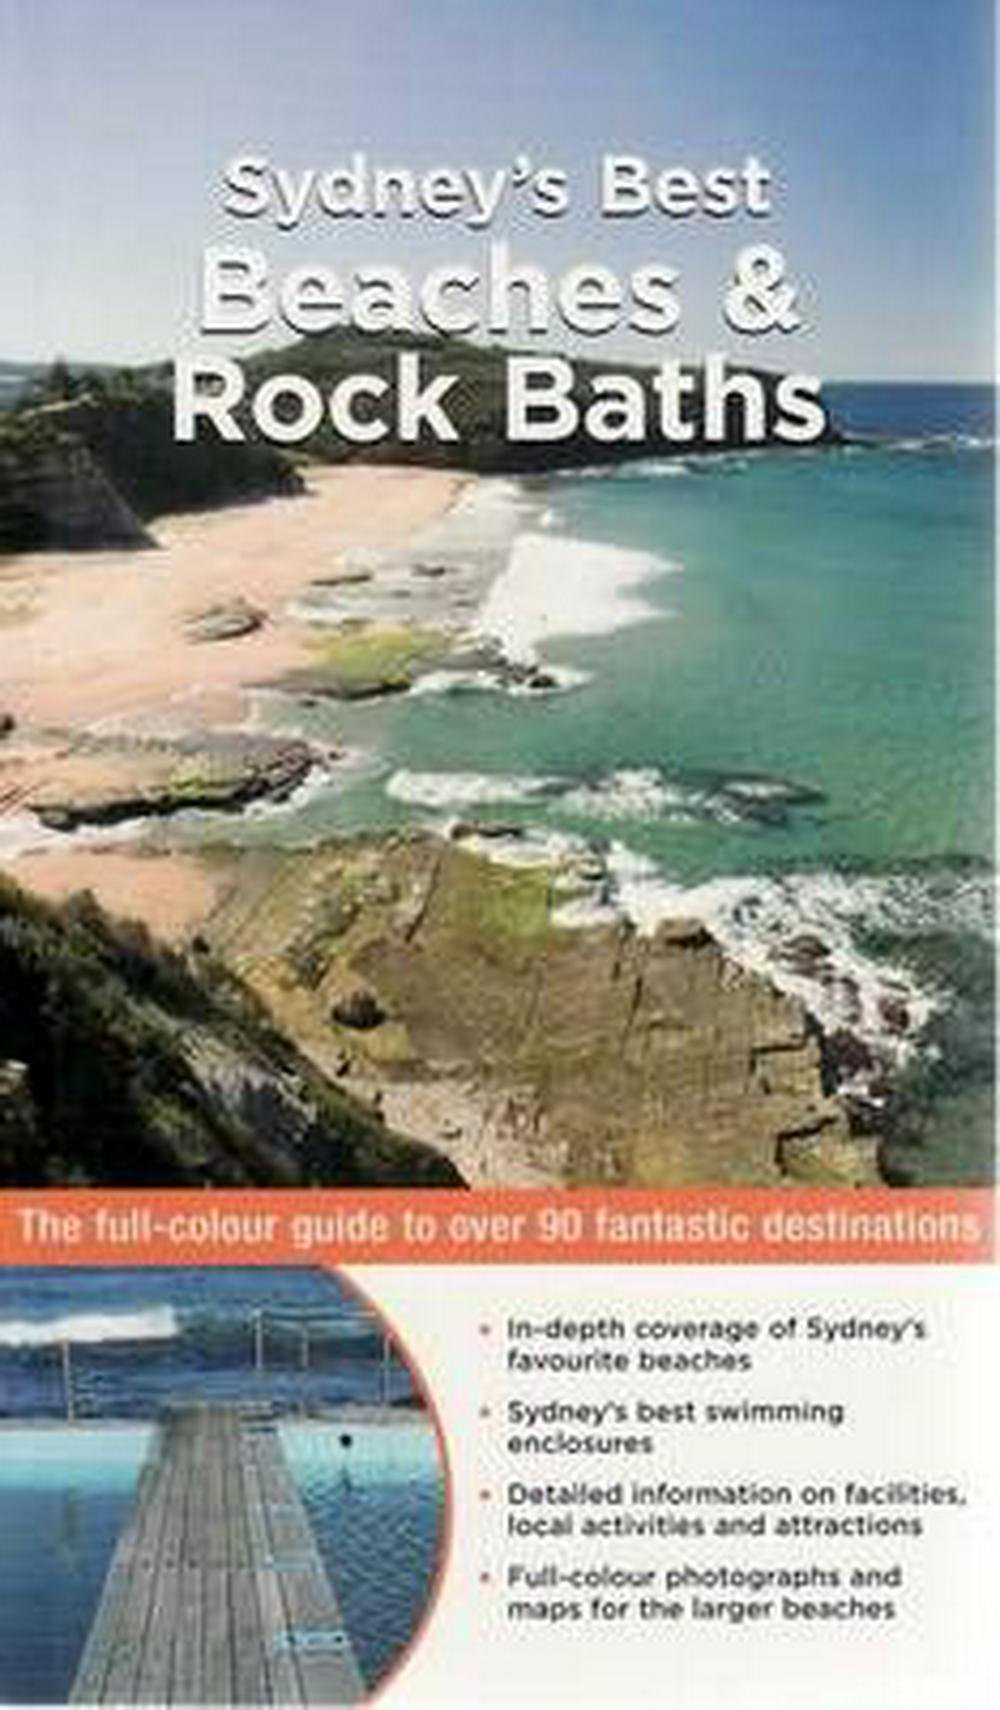 Sydney's Best Beaches and Rock Baths by Andrew Swaffer, ISBN: 9781921203367